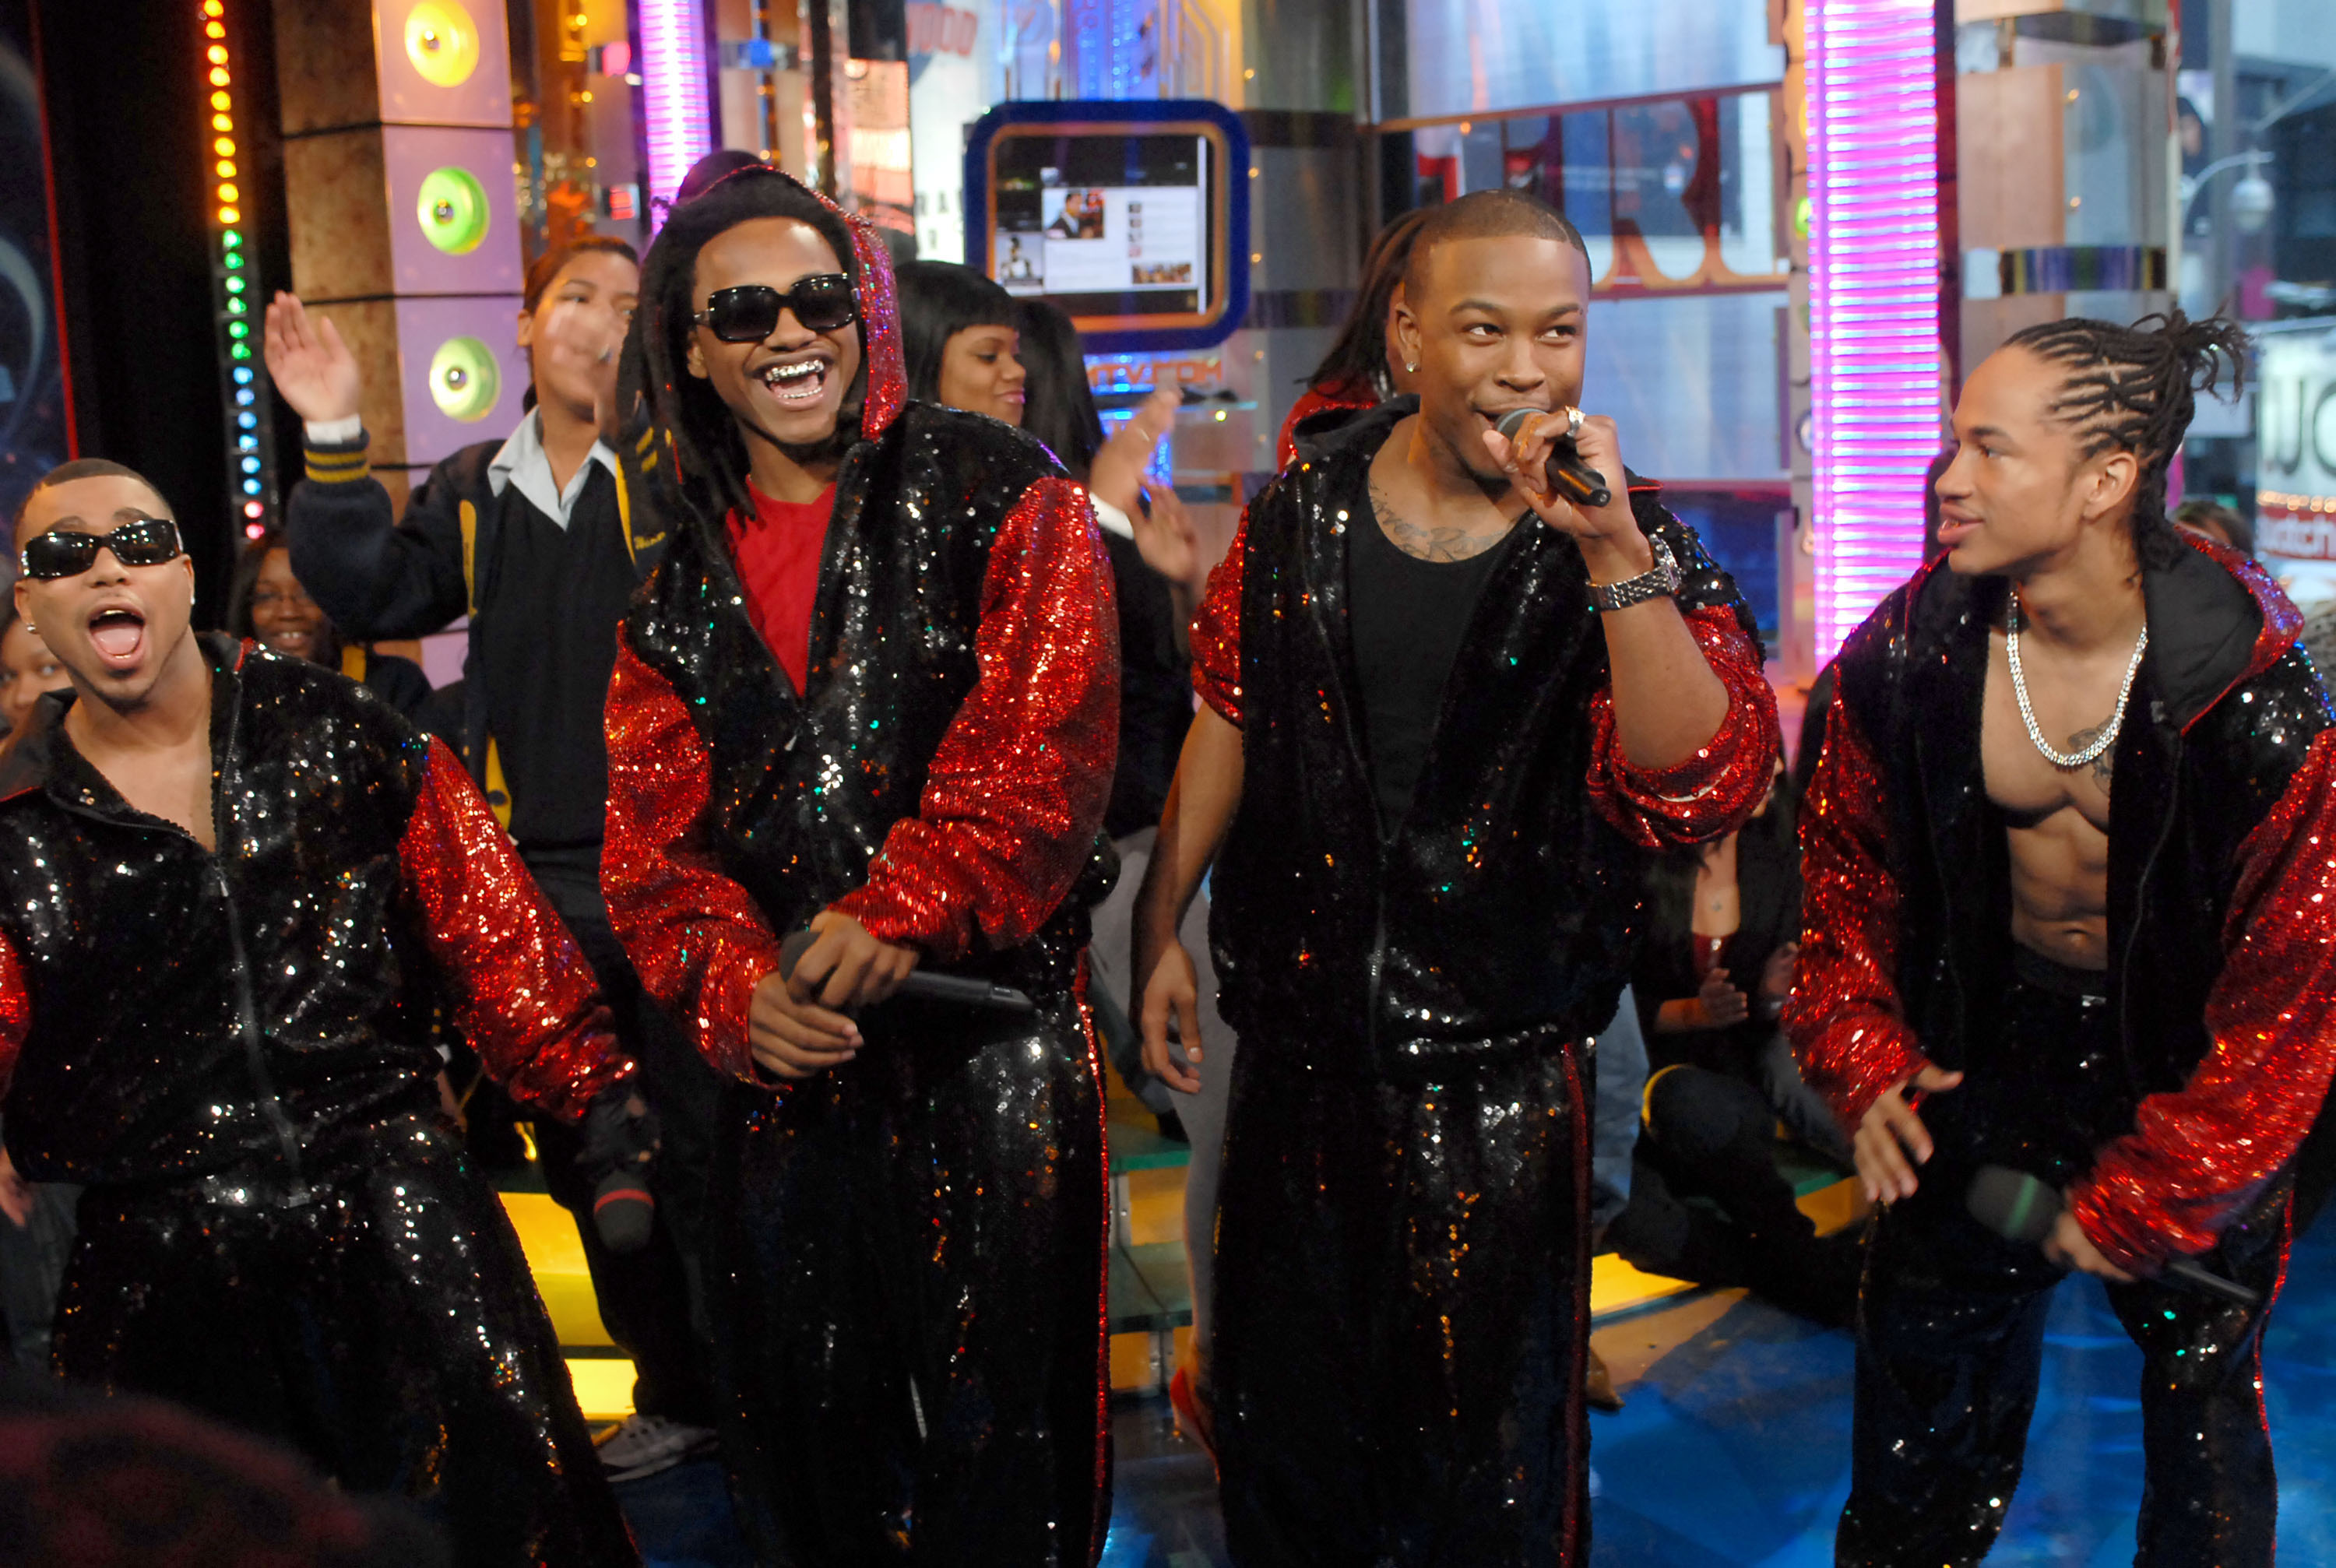 Carmen Electra, Ryan Reynolds, Alicia Keys, Jeremy Piven and Pretty Ricky Visit MTV's 'TRL' - January 23, 2007